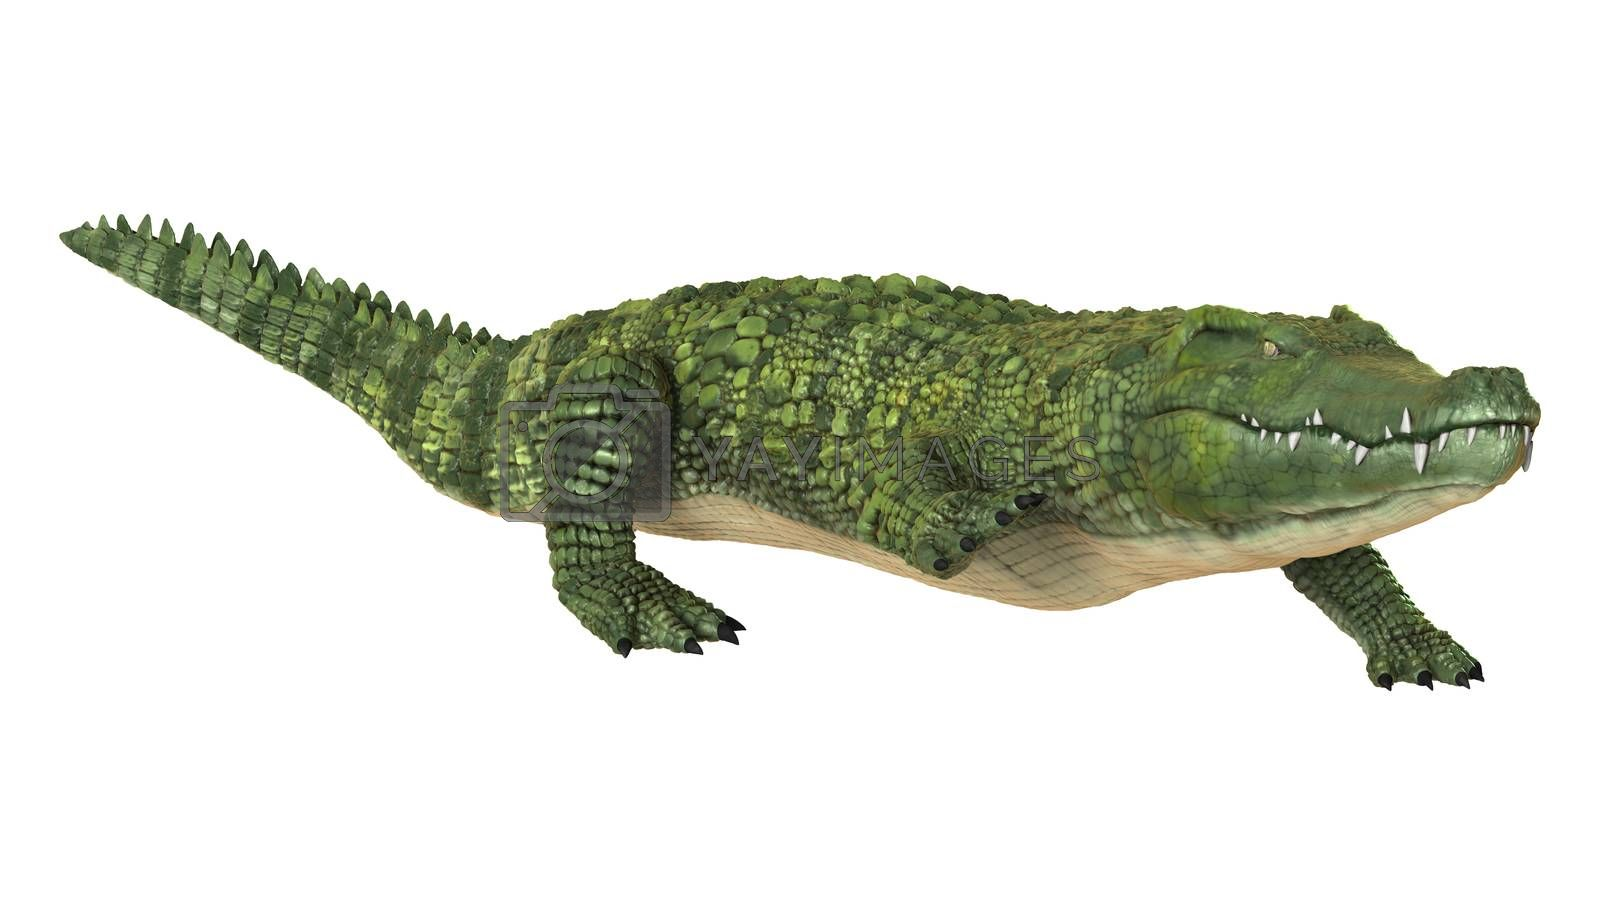 3D digital render of a green crocodile isolated on white background